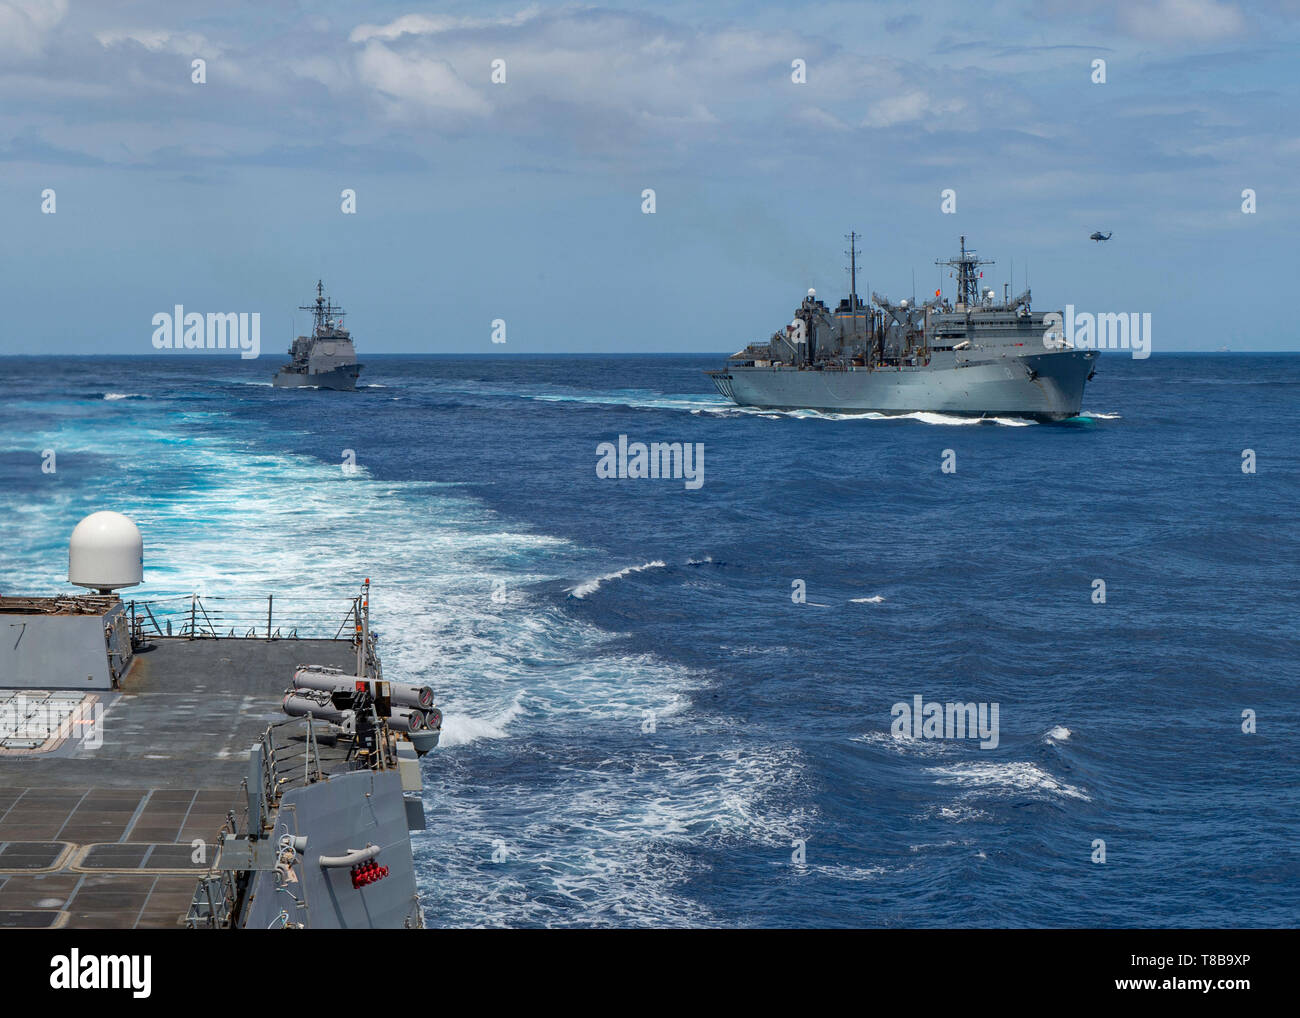 190508-N-SS350-0282 MEDITERRANEAN SEA (May 8, 2019) The Ticonderoga-class cruiser USS Leyte Gulf (CG 55) pulls alongside the fast combat support ship USNS Arctic (T-AOE 9) after the Arleigh Burke-class guided-missile destroyer USS Bainbridge (DDG 96) completed its replenishment-at-sea. Bainbridge is underway as part of the Abraham Lincoln Carrier Strike Group (ABECSG) deployment in support of maritime security cooperation efforts in the U.S. 5th, U.S. 6th and U.S. 7th Fleet areas of operation. With Abraham Lincoln as the flagship, deployed strike group assets include staffs, ships and aircraft Stock Photo